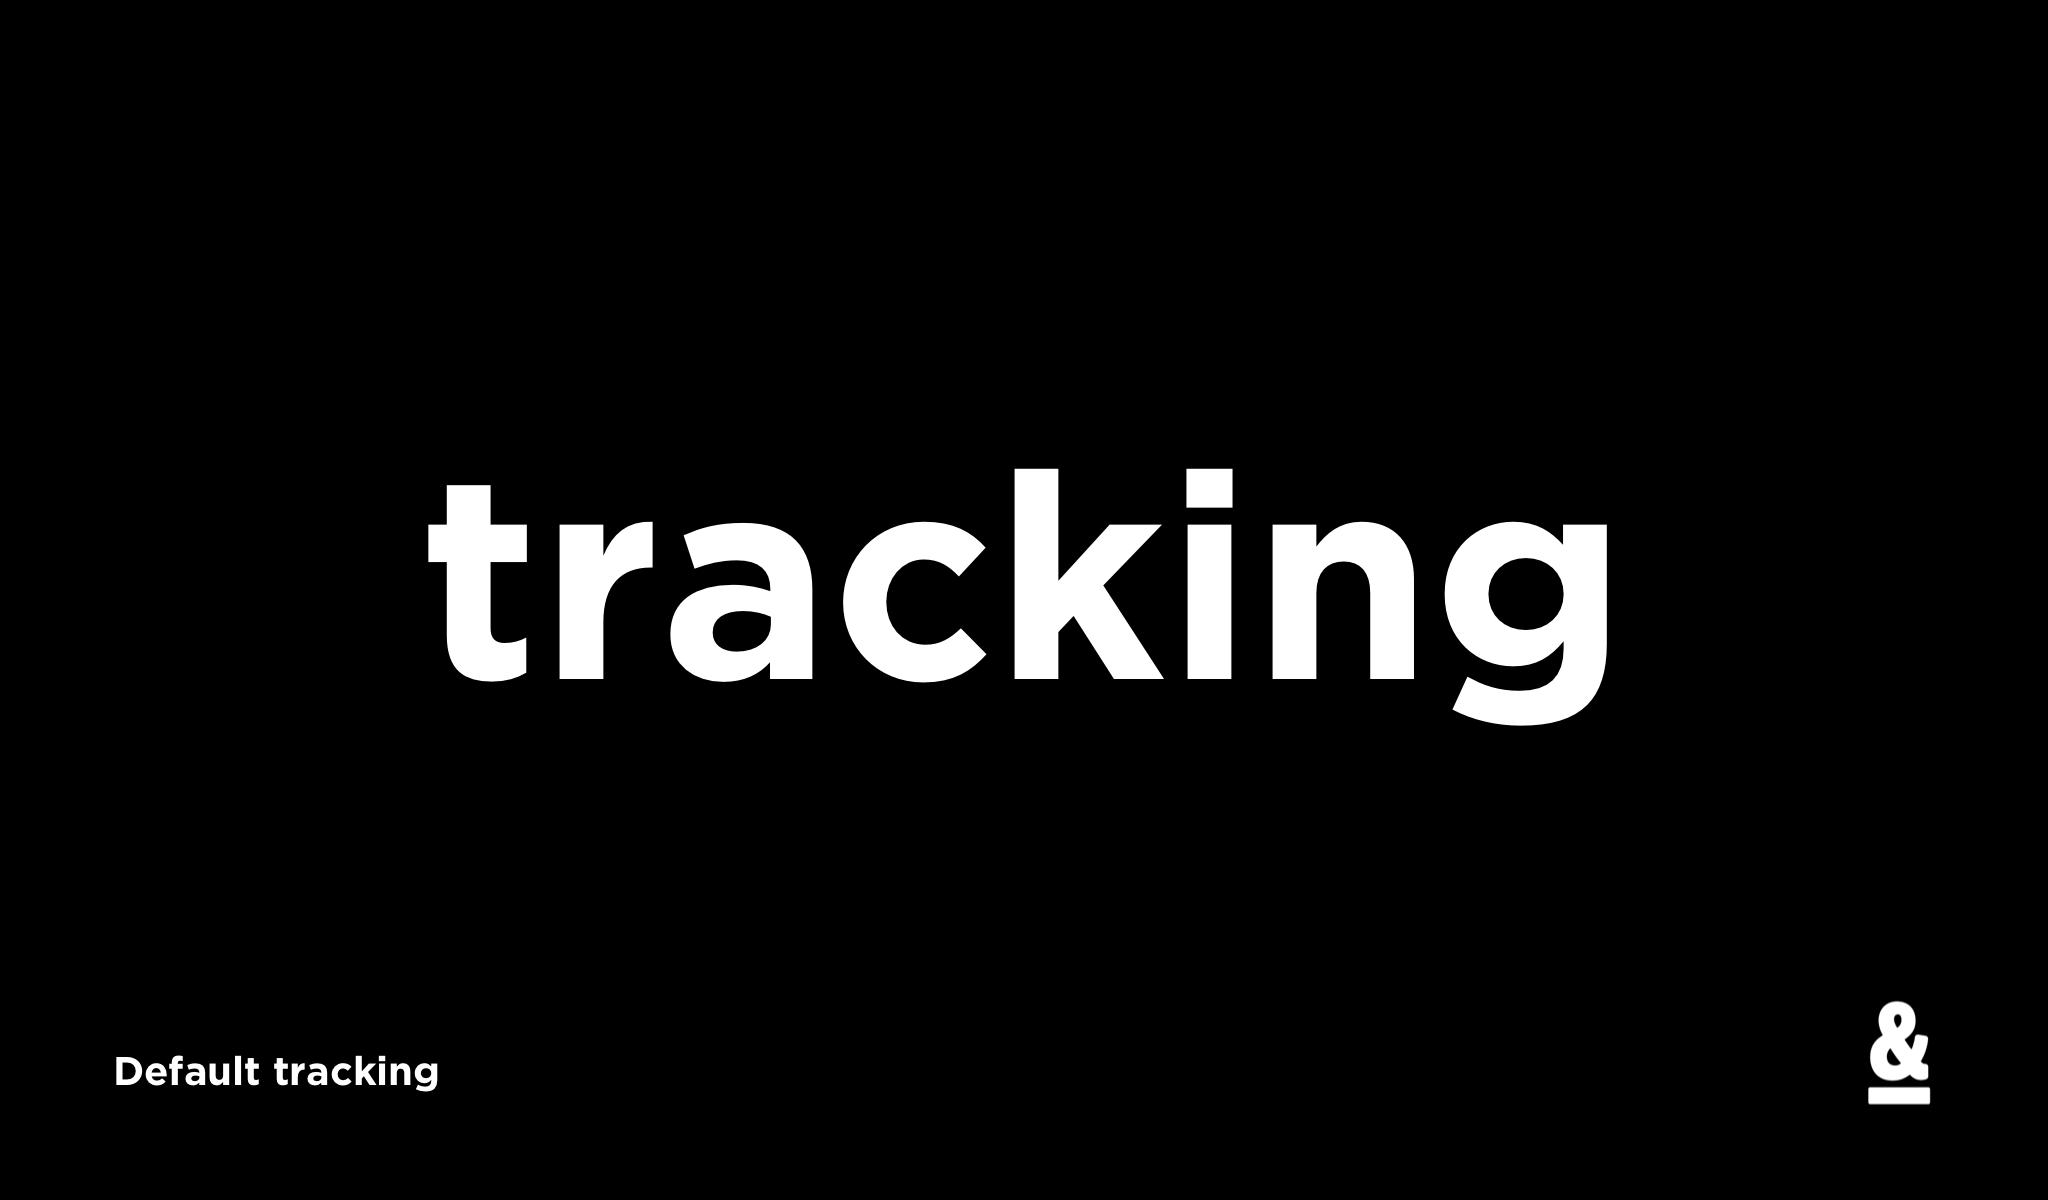 tracking_2.png